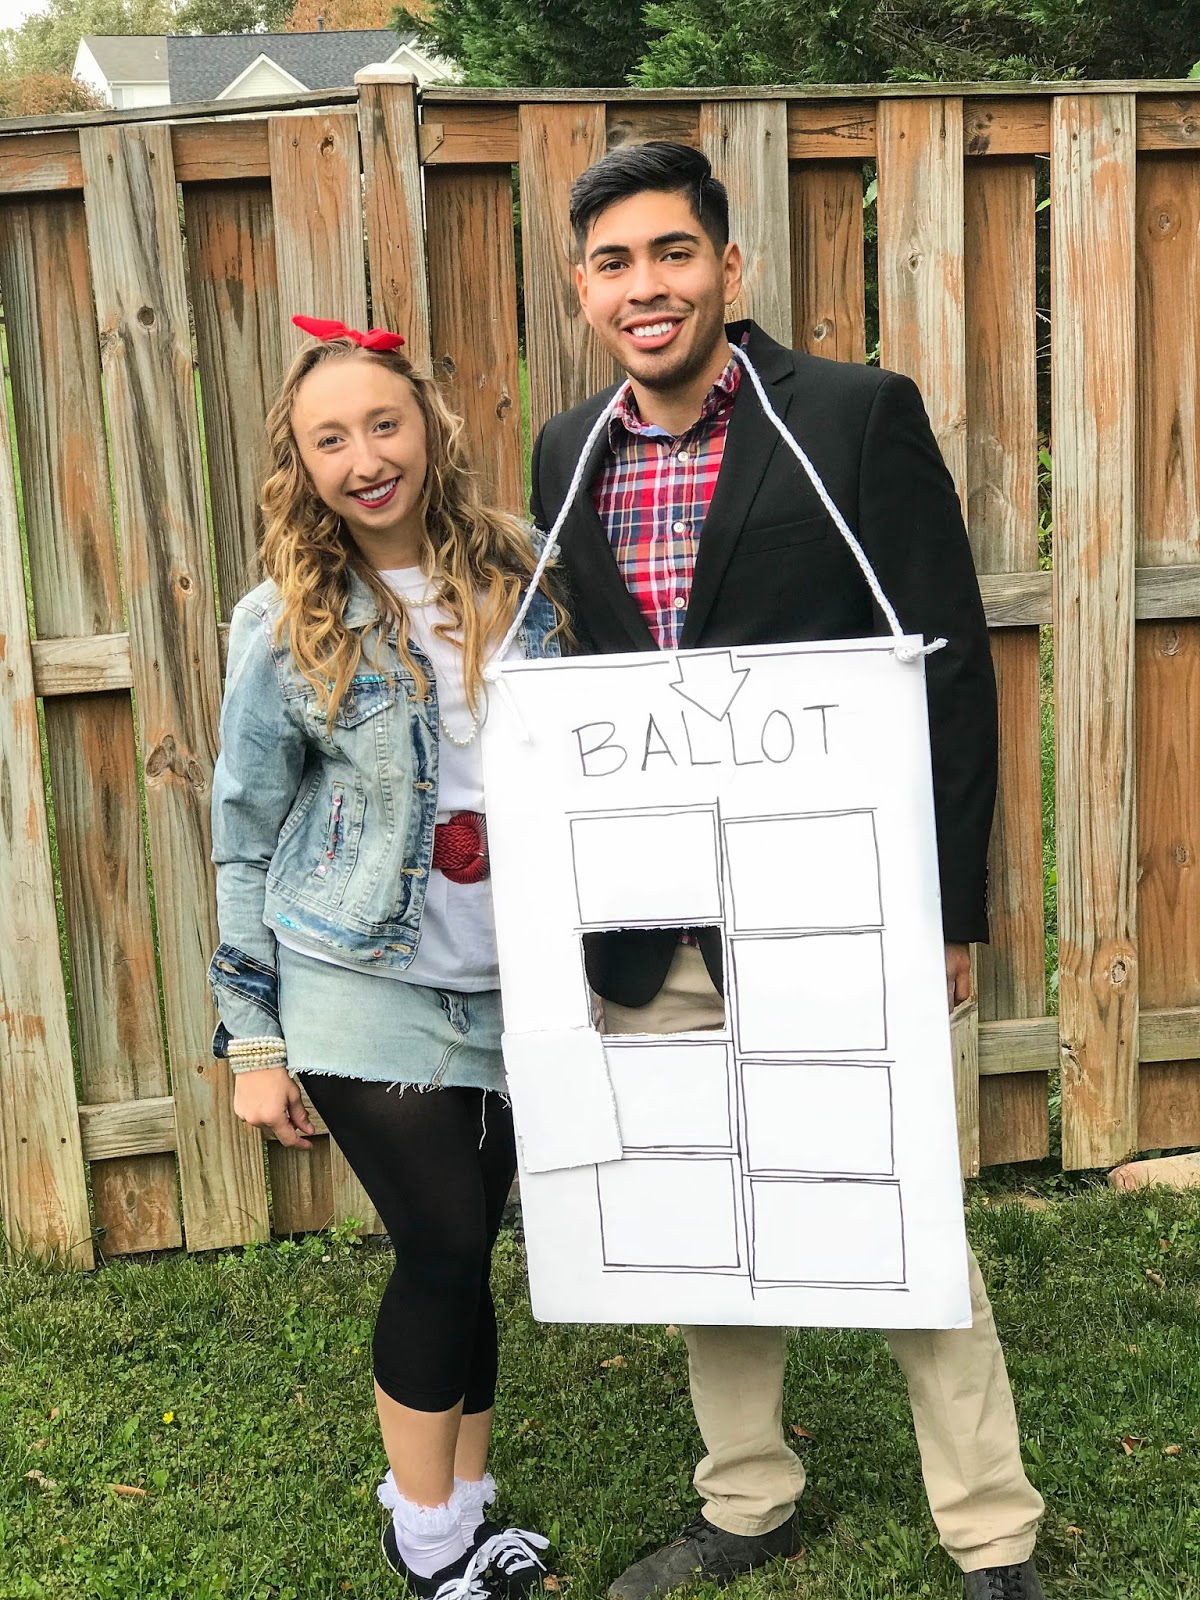 Our $50 Couples Costume